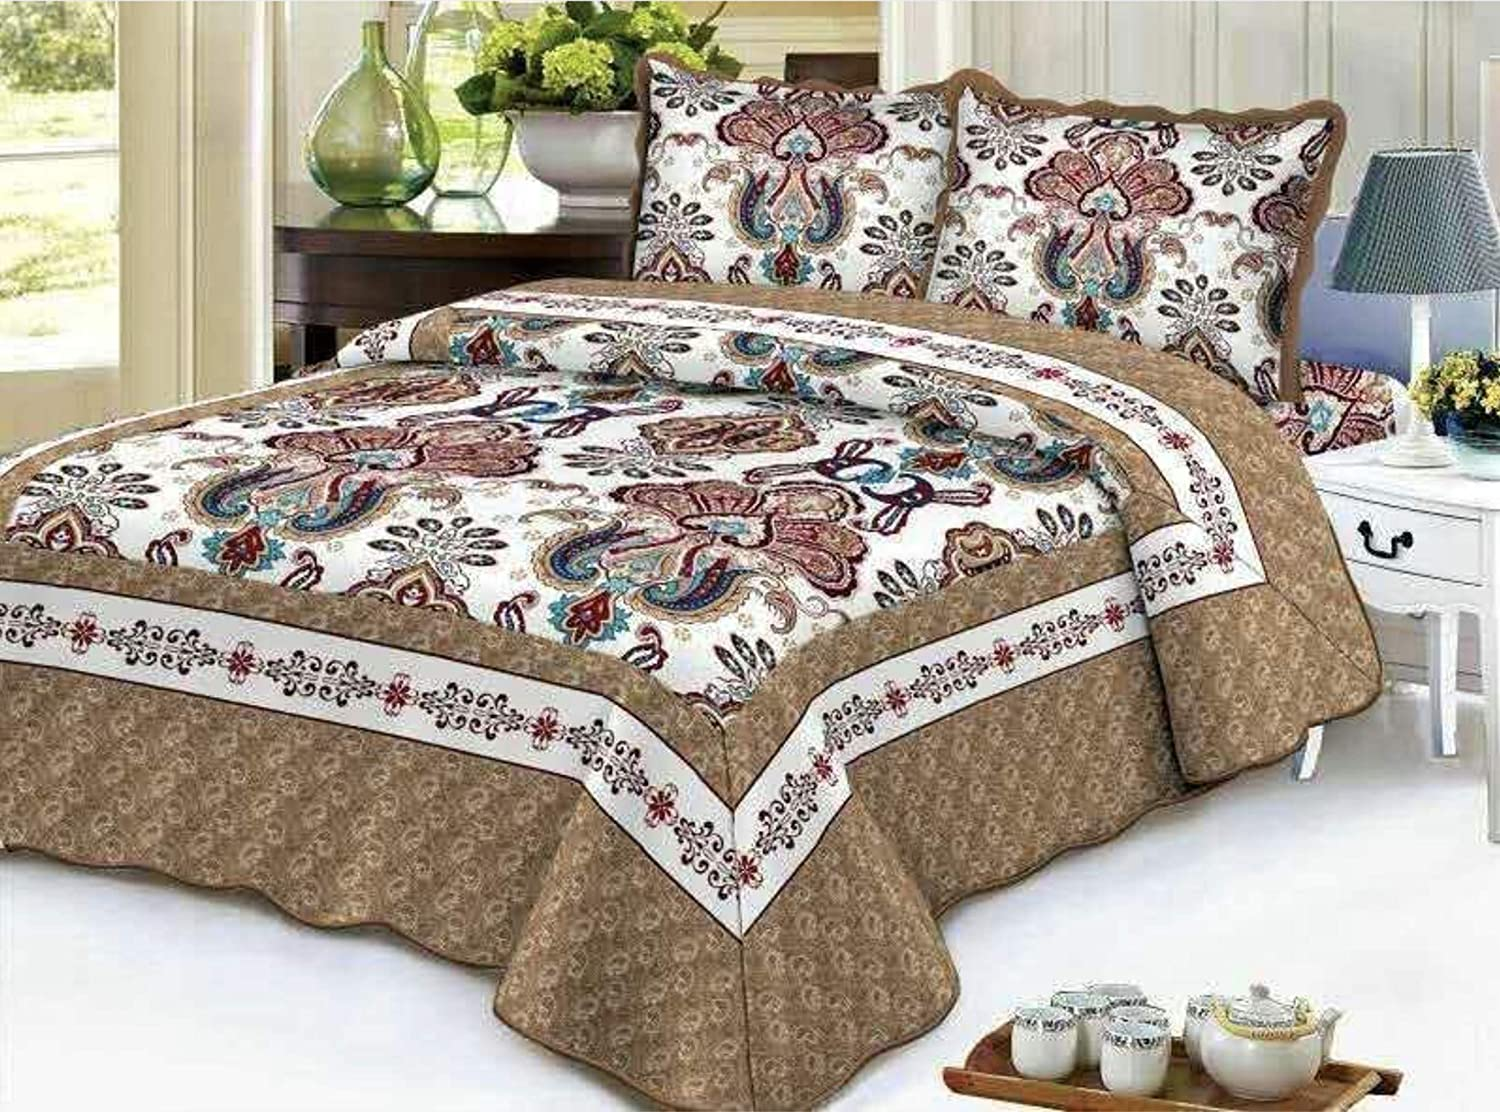 Empire Home Traditional Reversible 3-Piece Quilted Bedding Bedspread Coverlet (Colorfull Flowers, Queen Size)